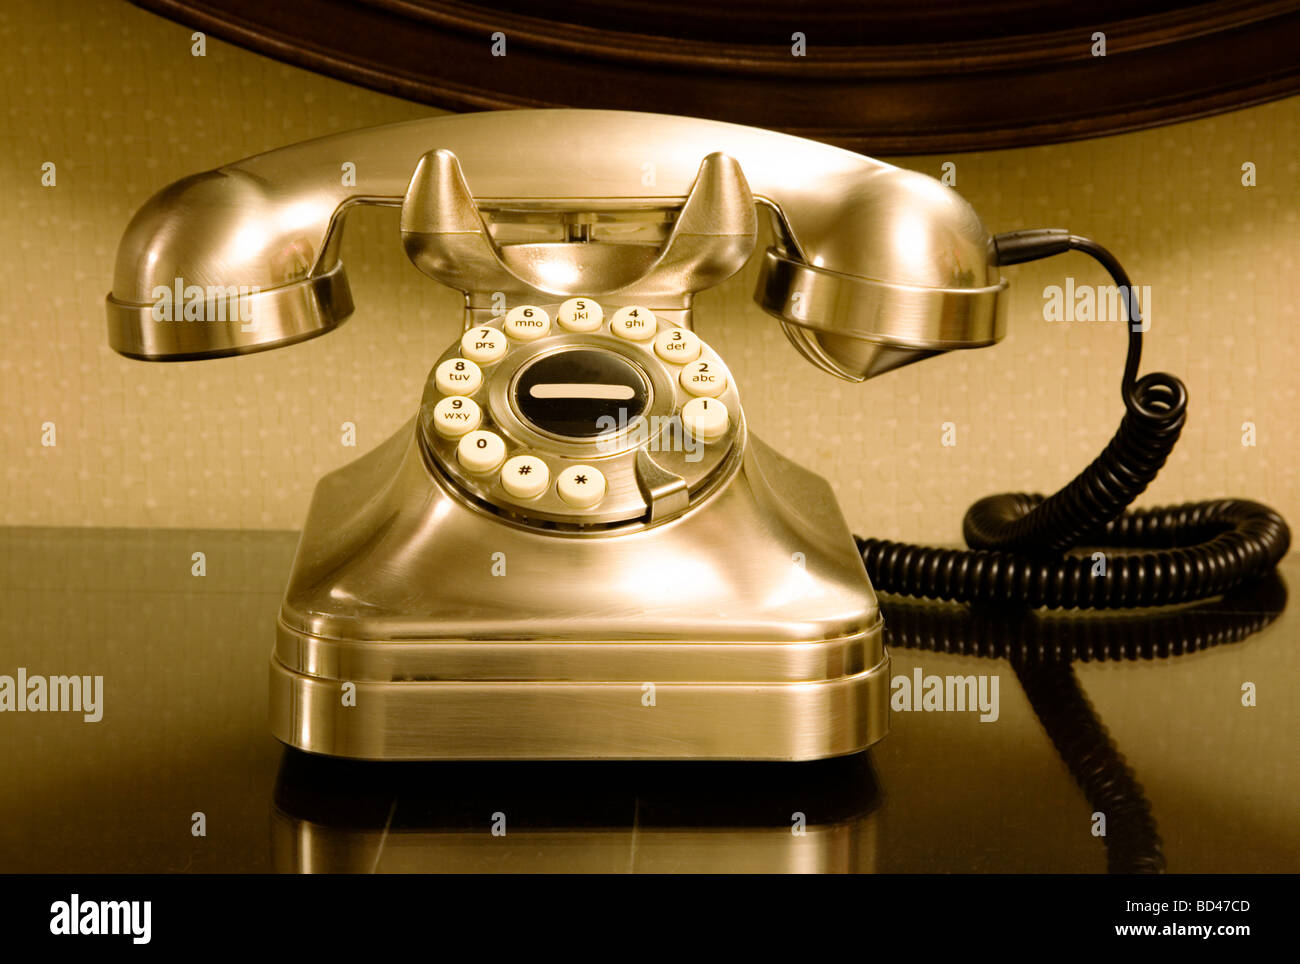 Traditional, vintage rotary style telephone on a desk - Stock Image